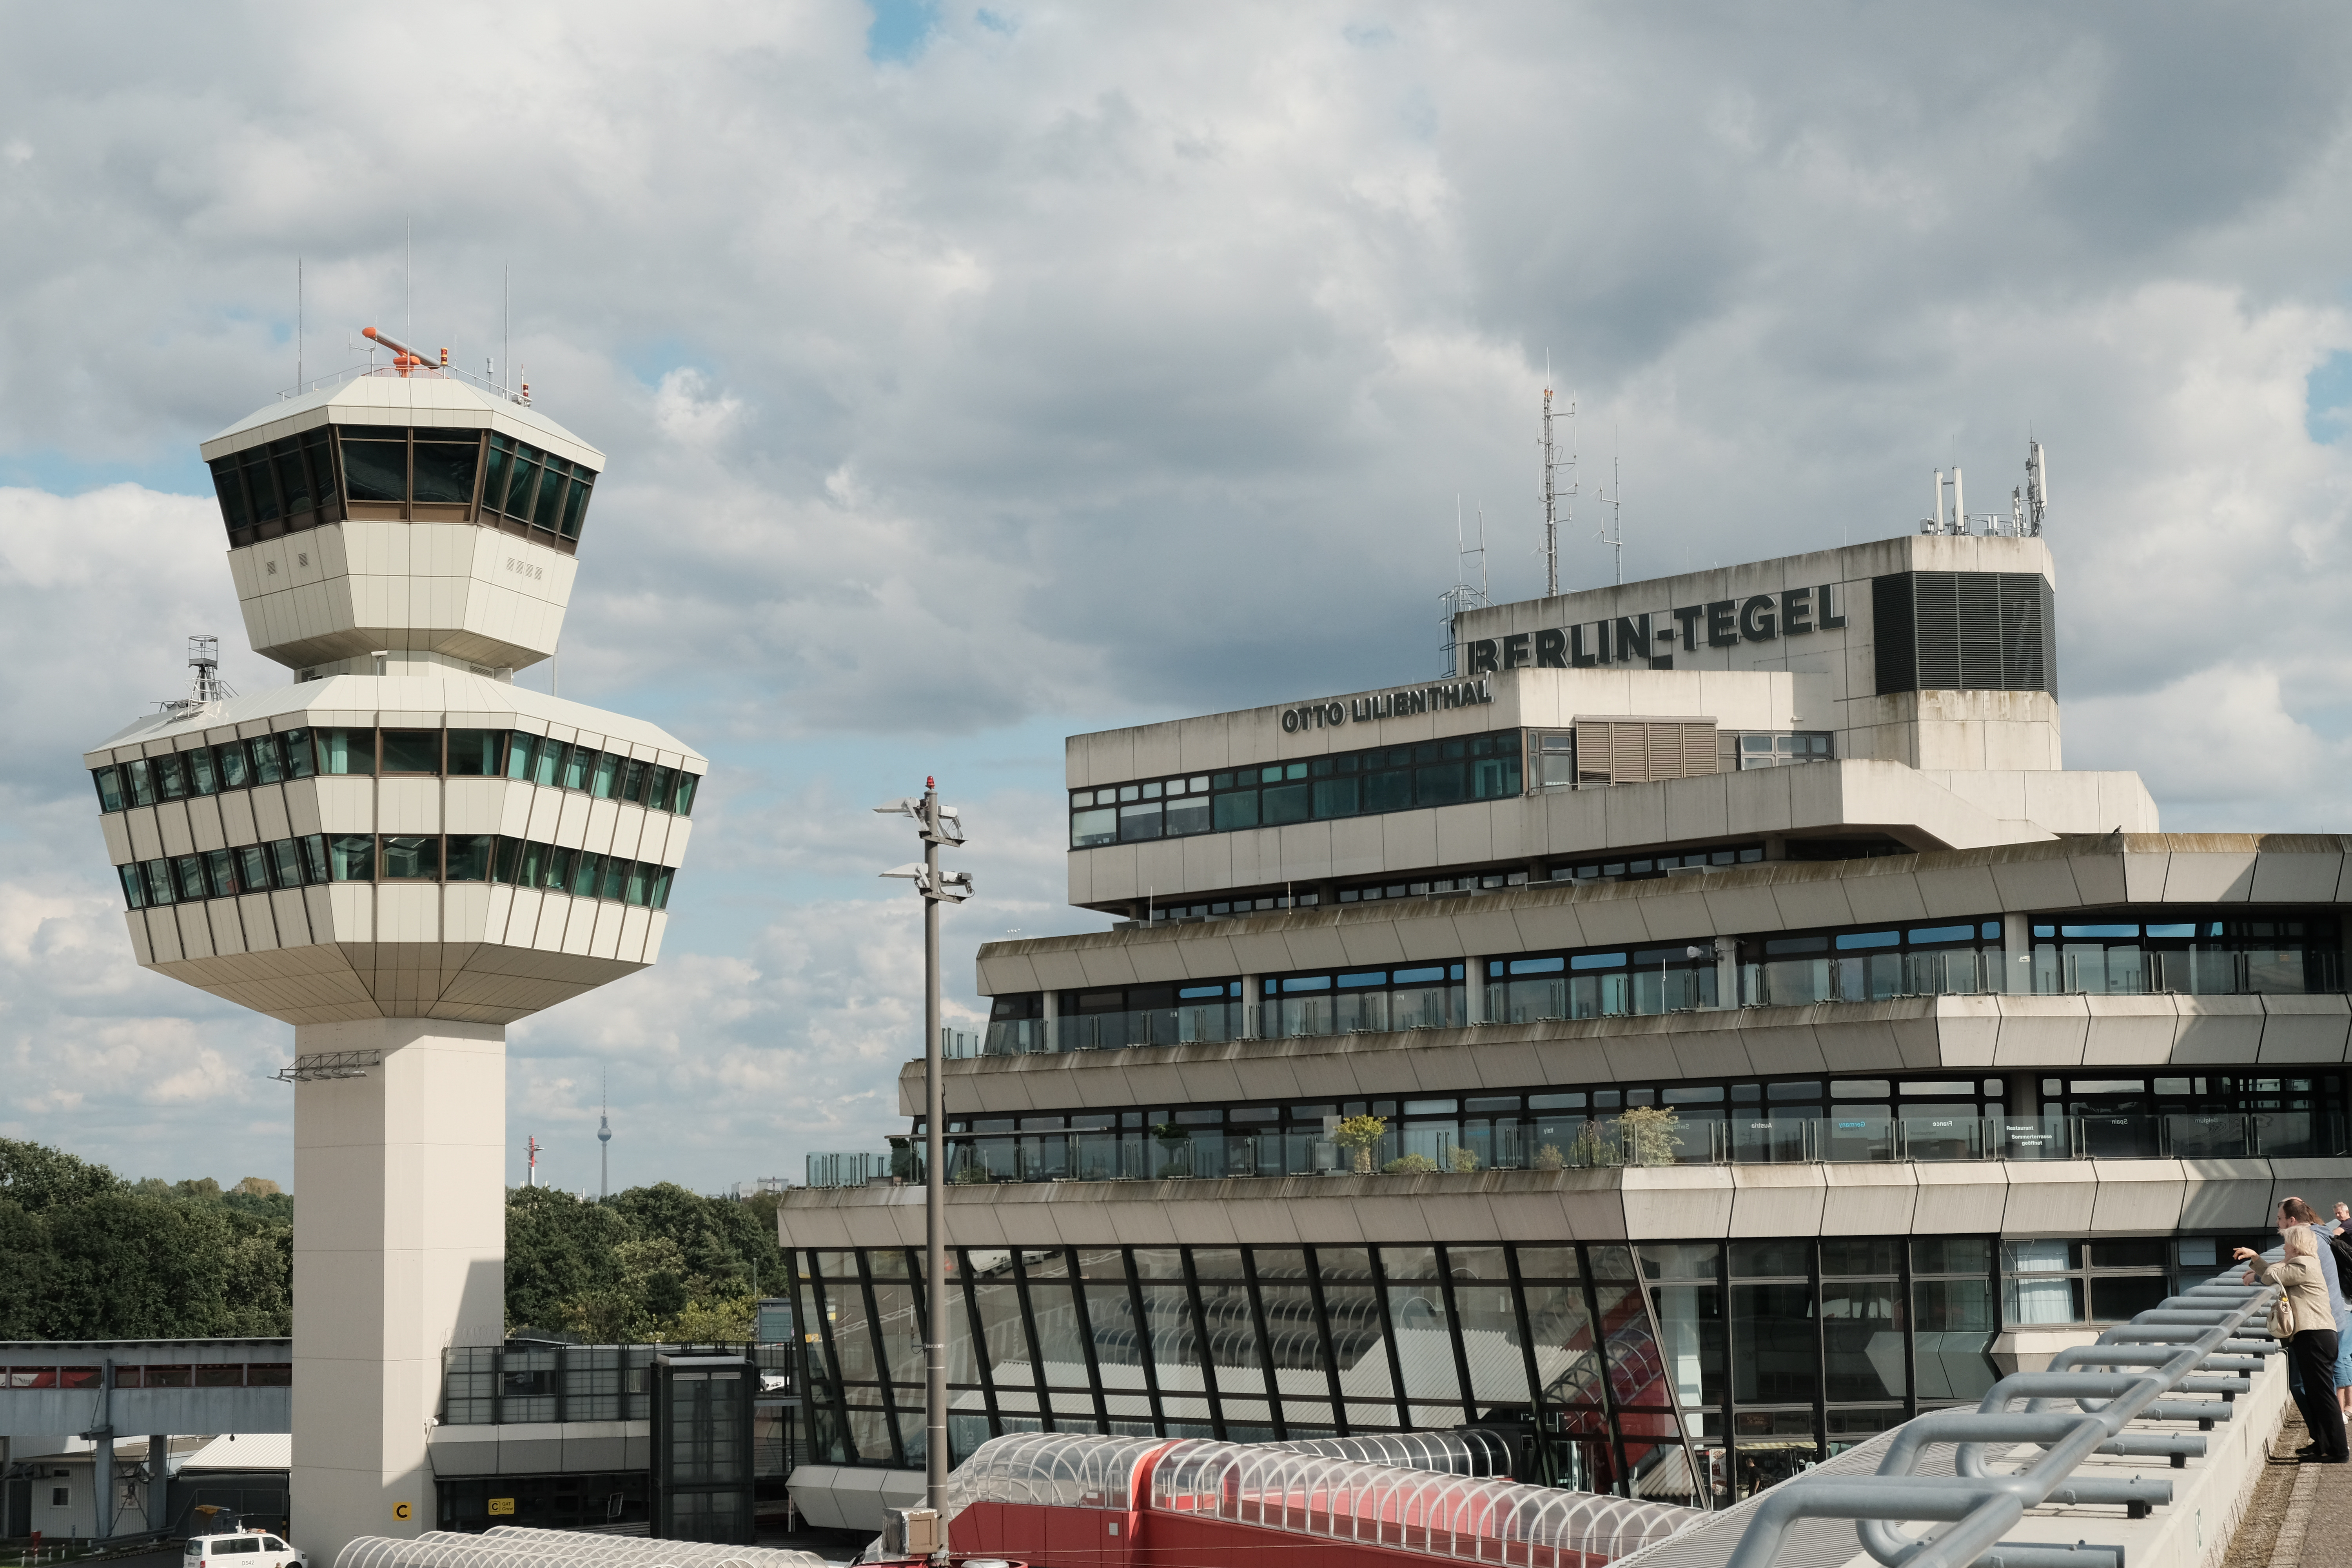 Berliners vote to keep tegel airport open but its days are numbered